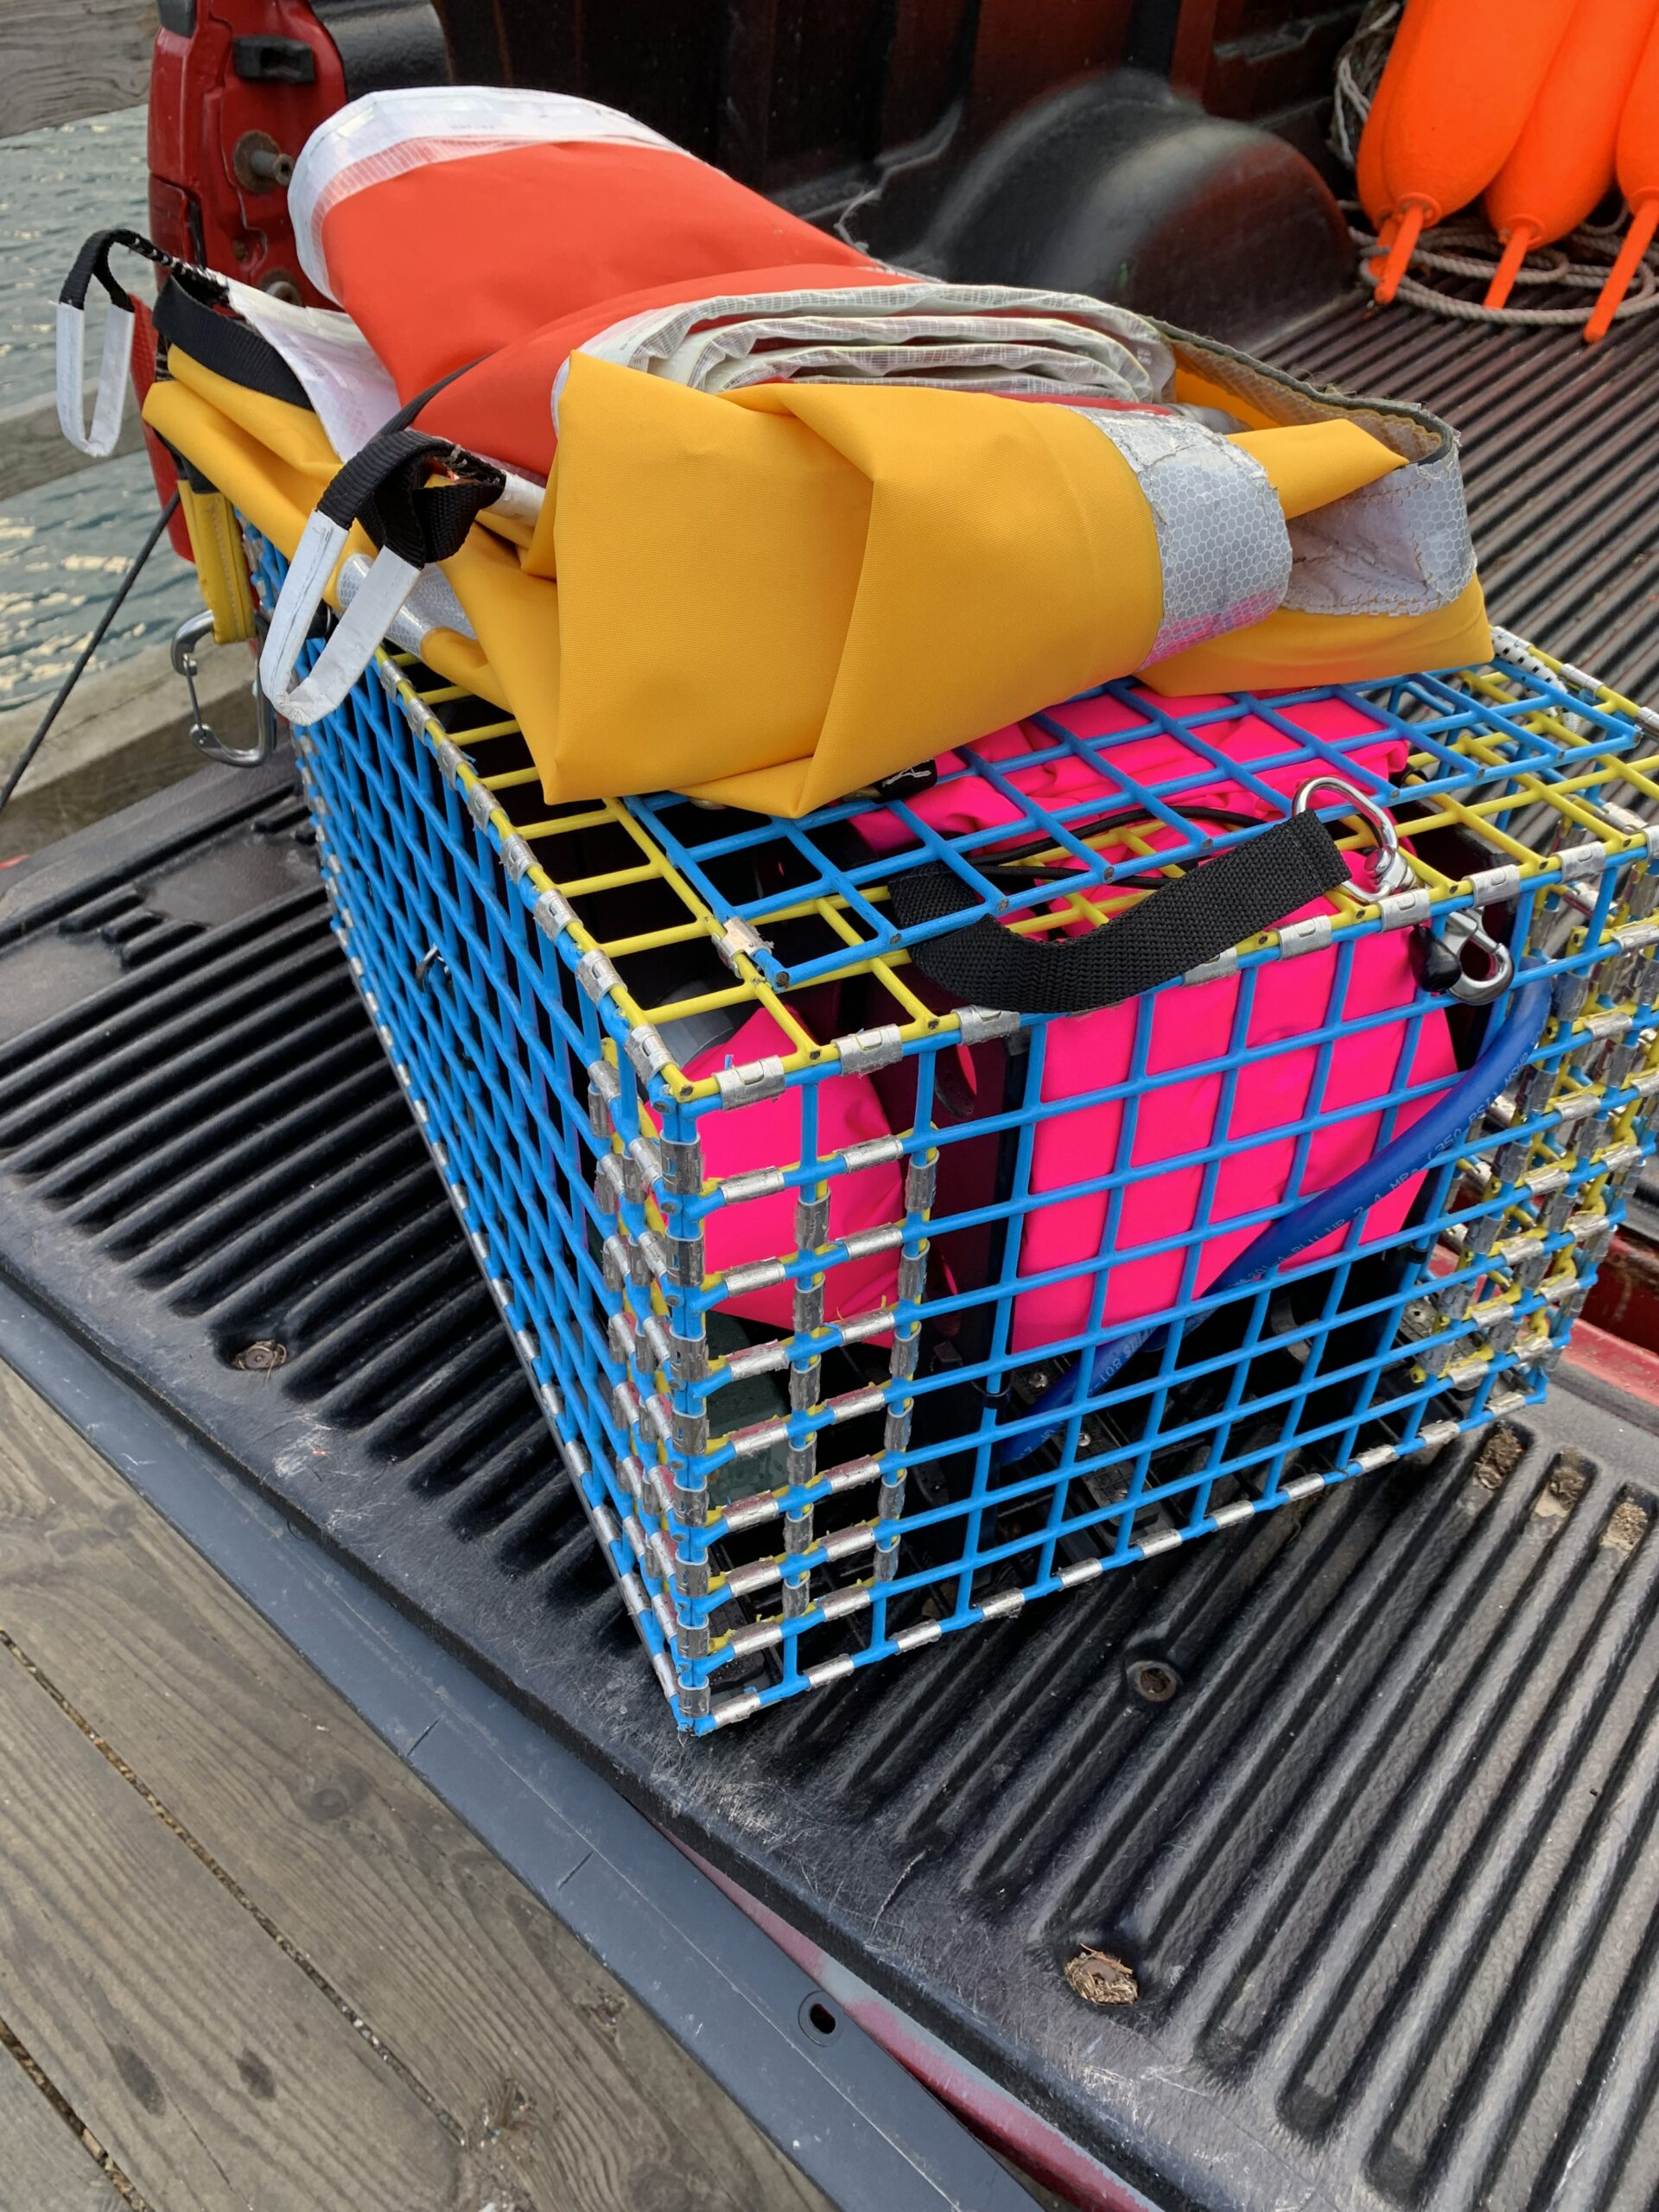 Safe fishing gear including lobster trap